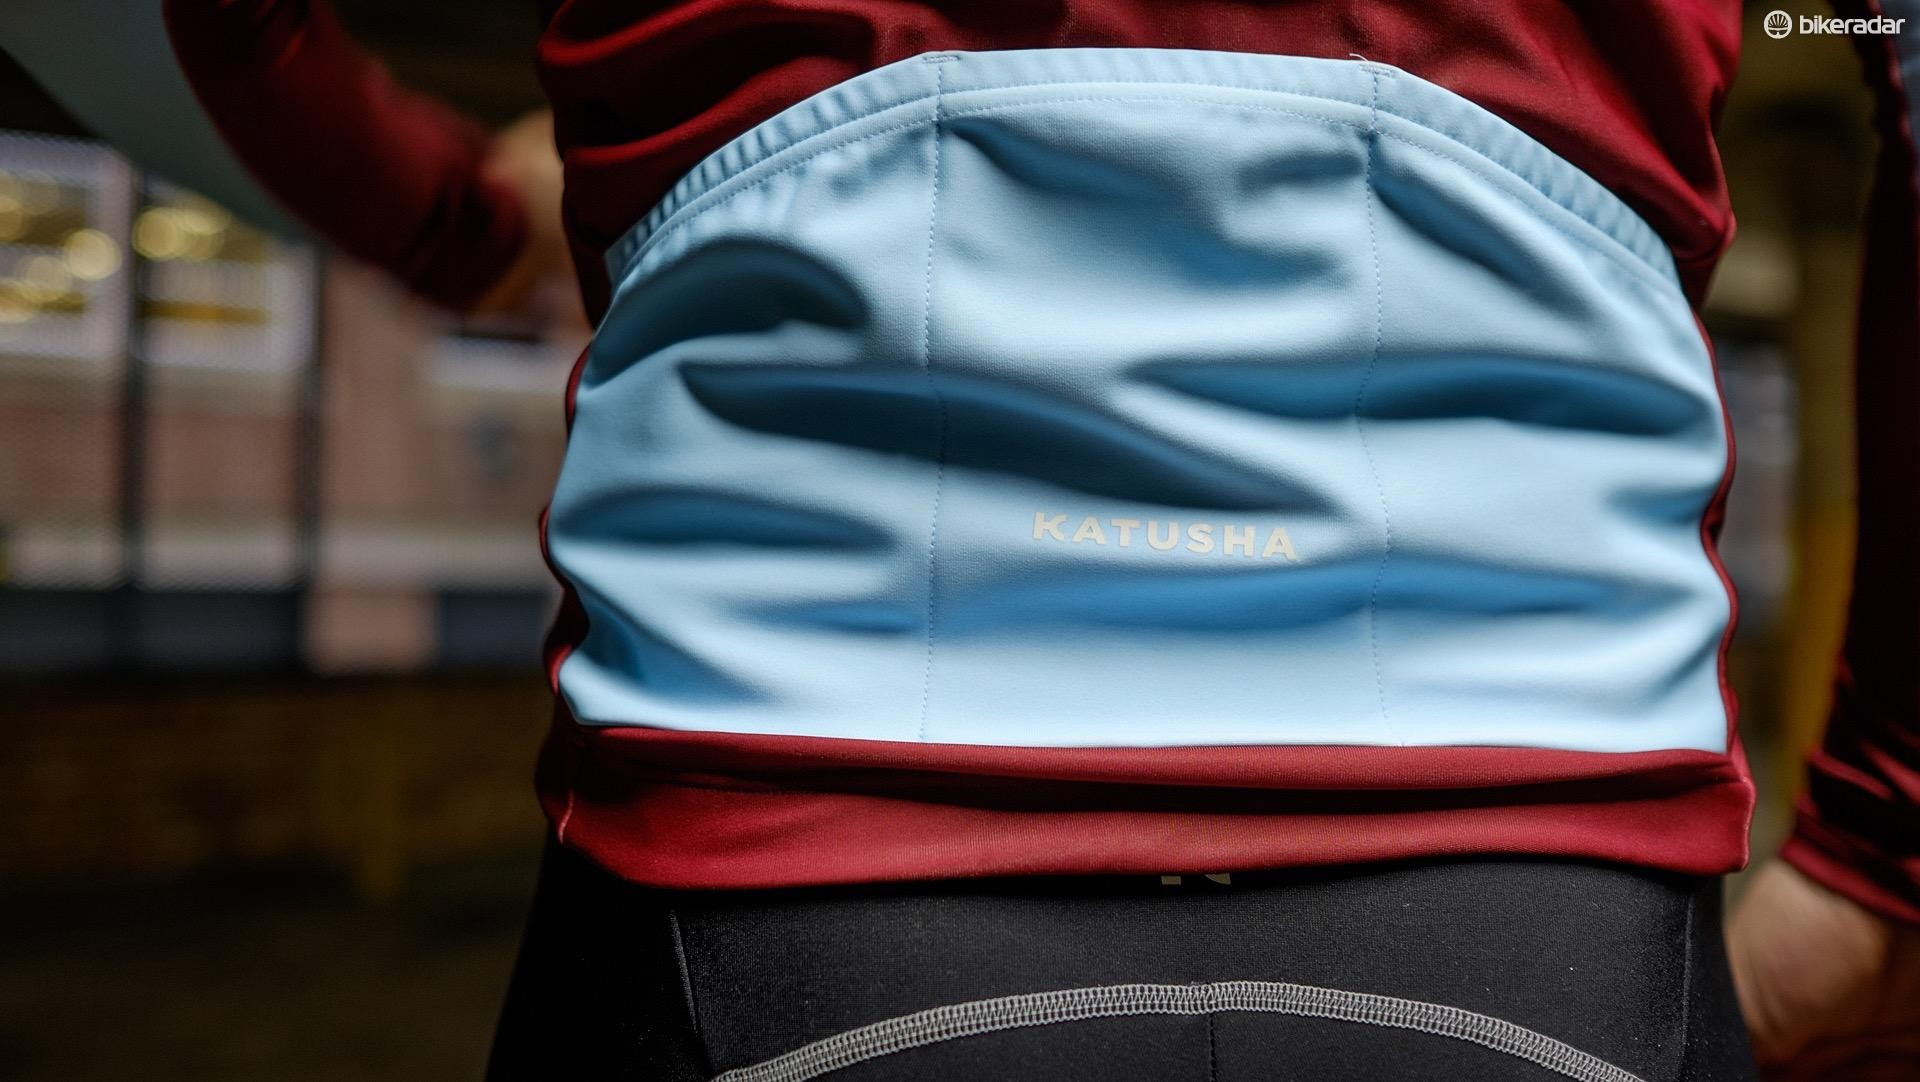 The light blue fabric used on the pockets improves visibility but is prone to stains